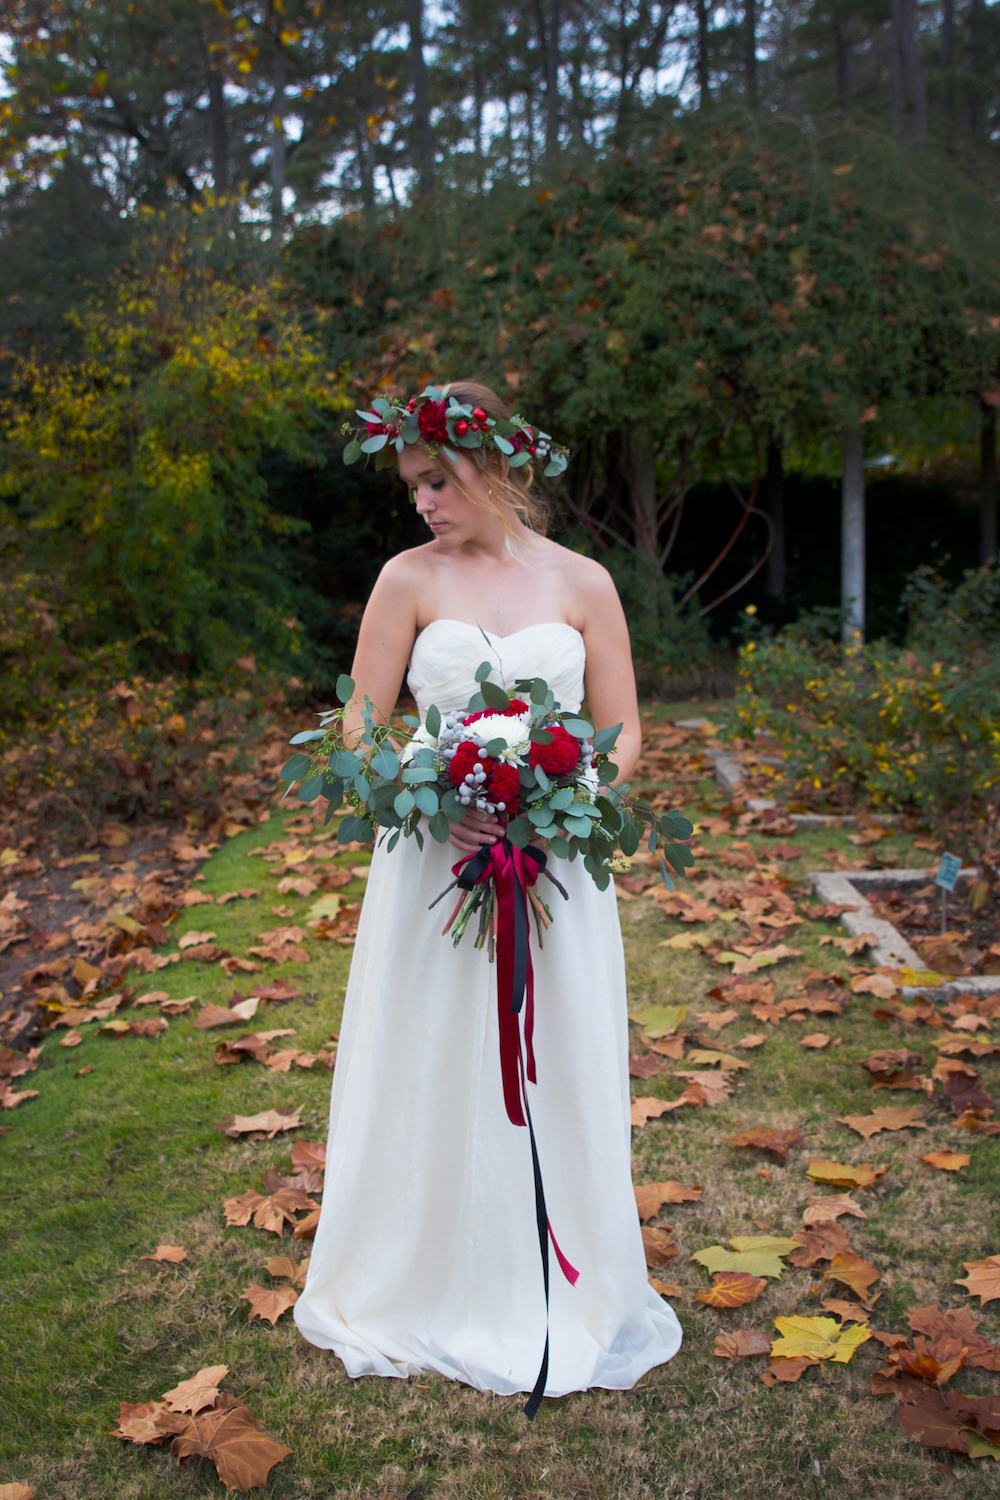 A romantic floral garden bridal inspiration styled shoot / photo by Spark Photography